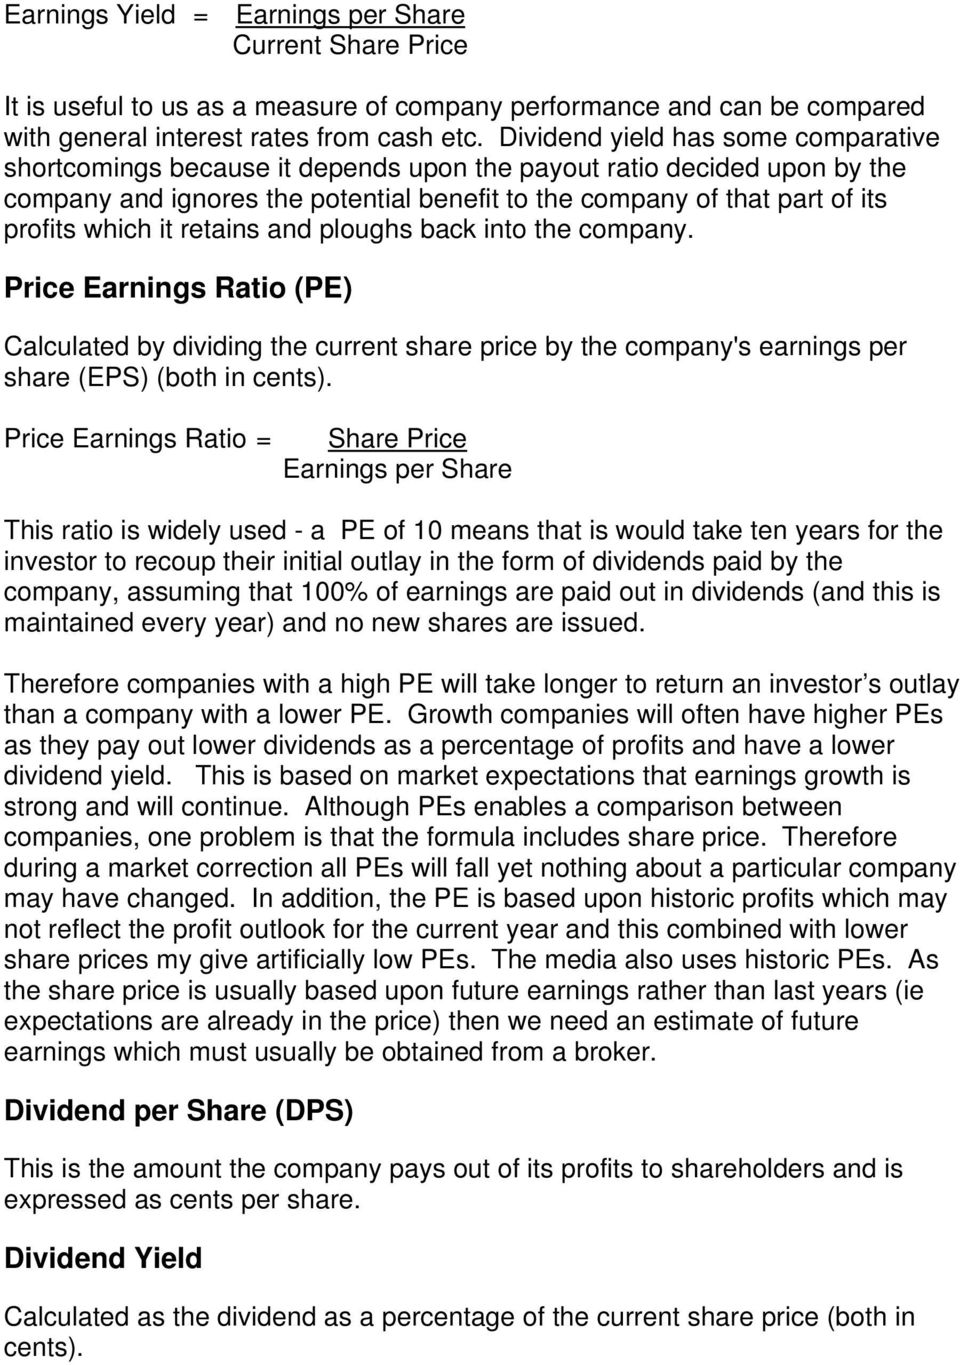 which it retains and ploughs back into the company. Price Earnings Ratio (PE) Calculated by dividing the current share price by the company's earnings per share (EPS) (both in cents).